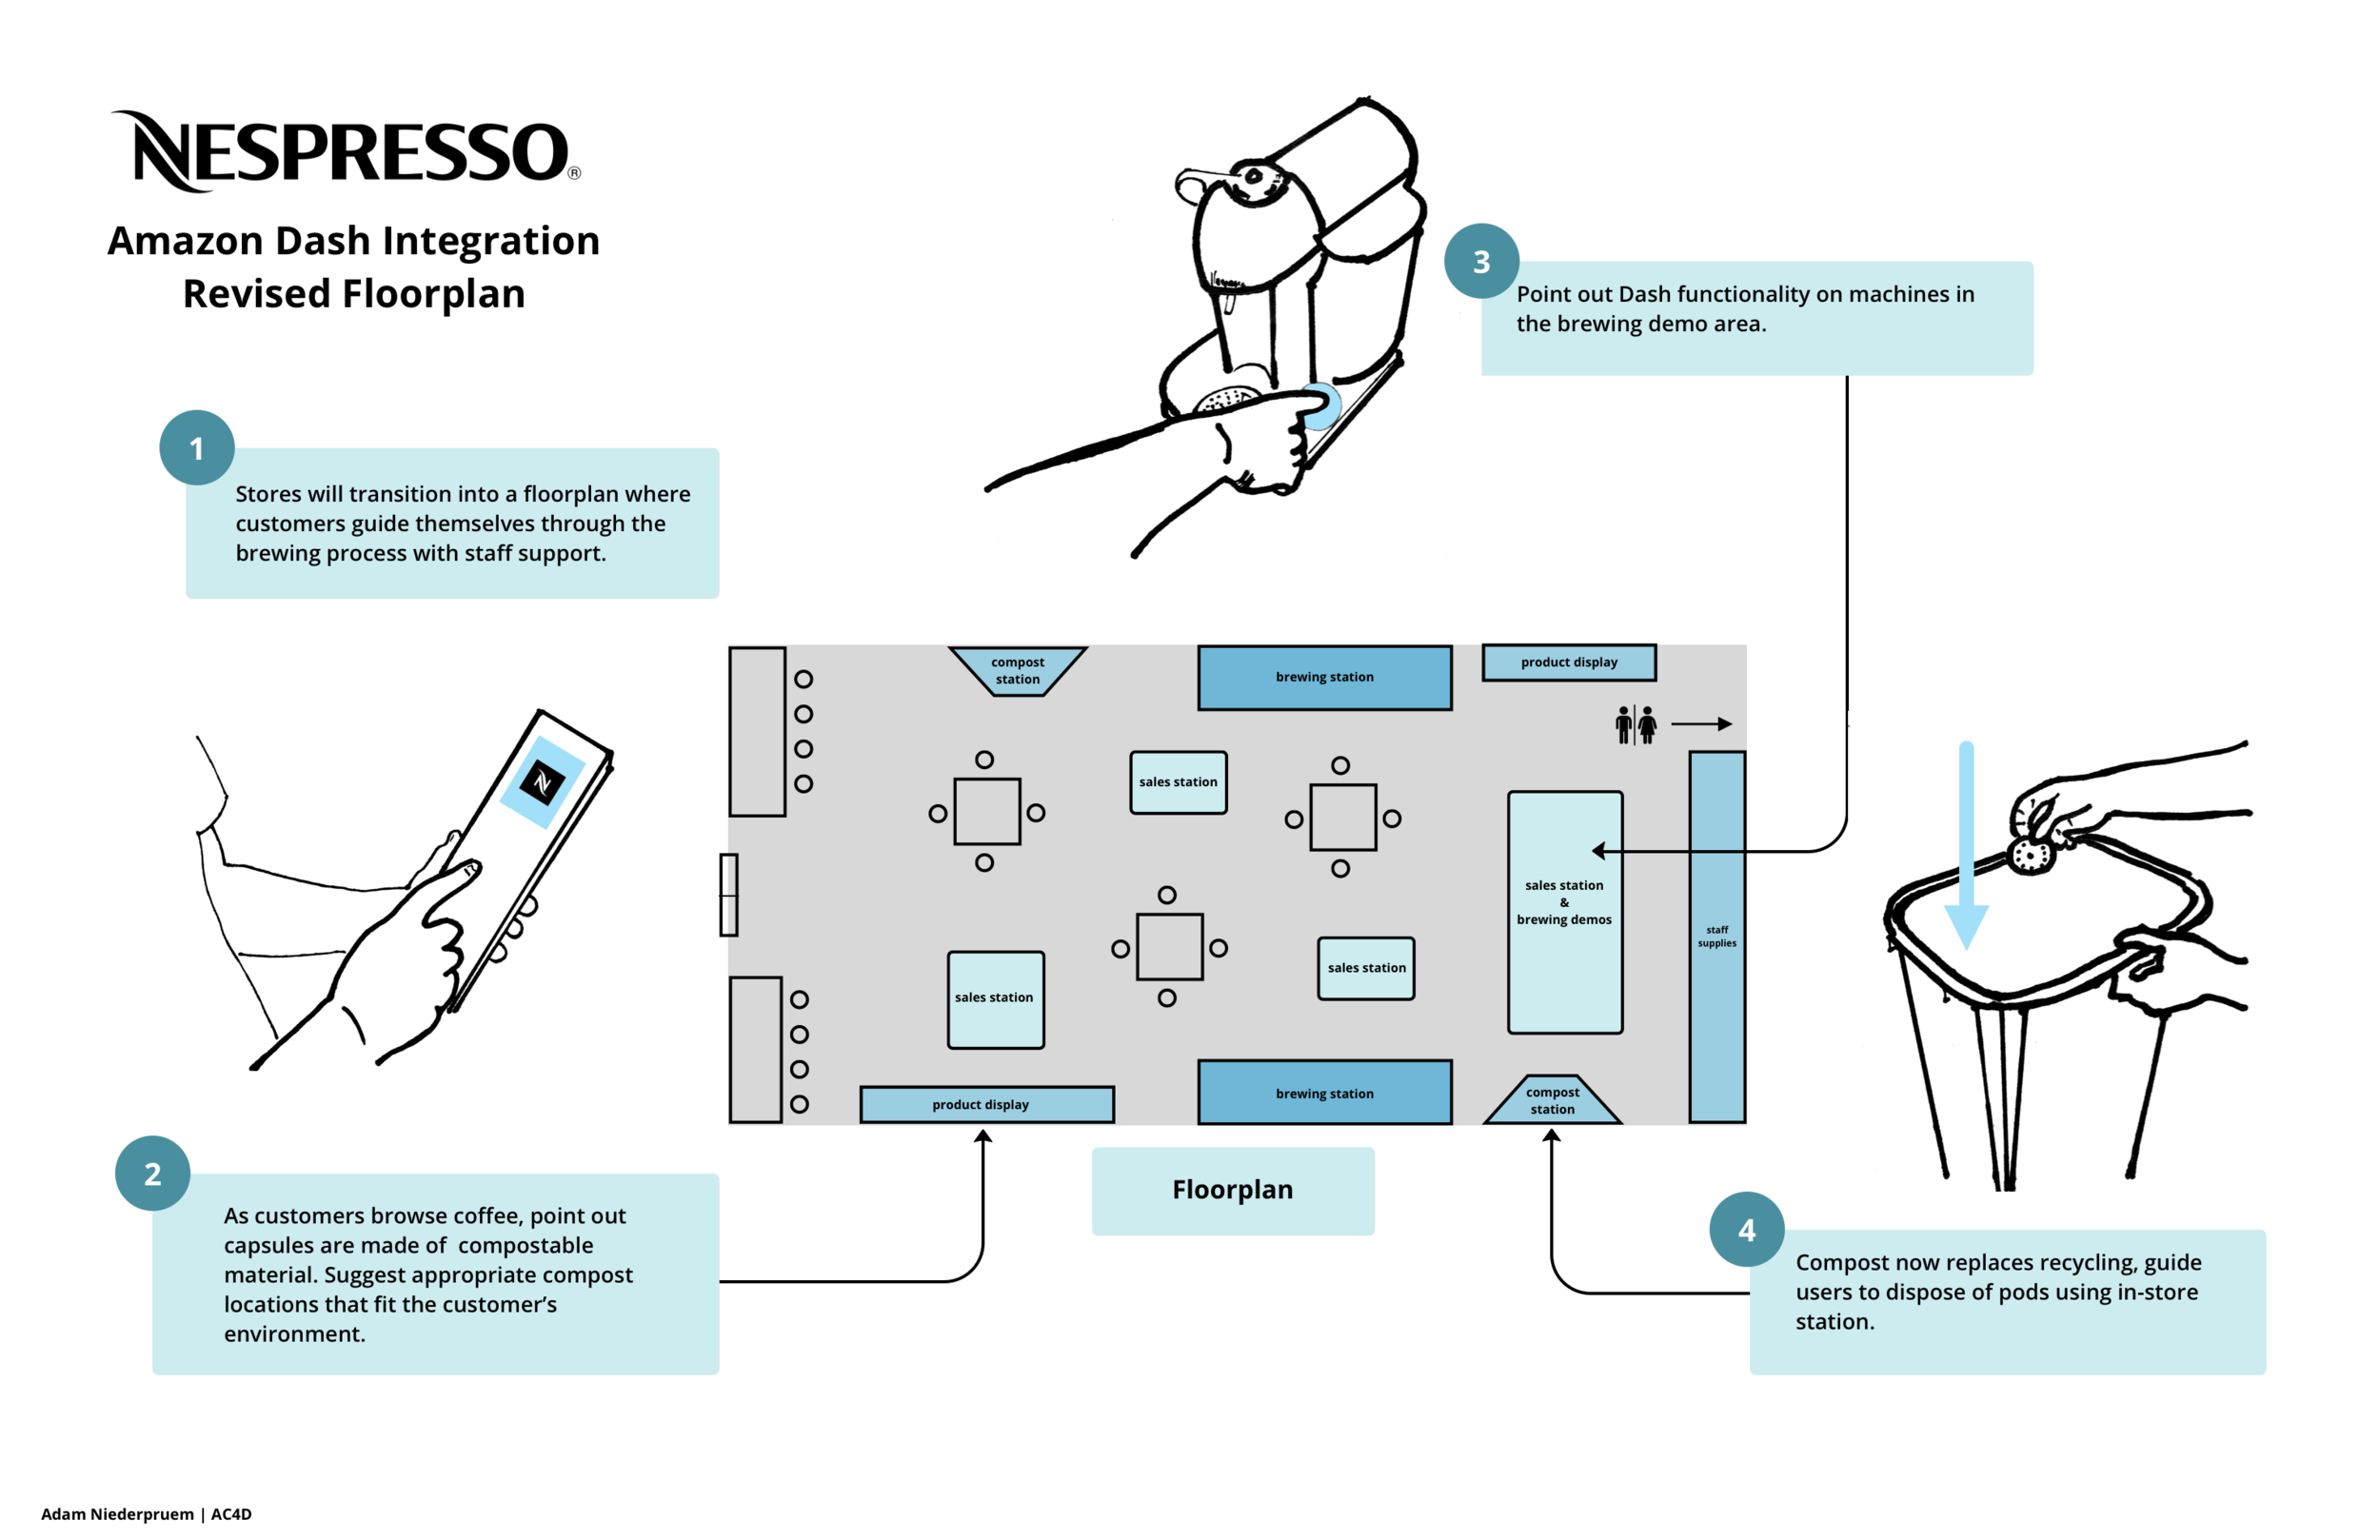 Revised Nespresso Store Floorplan:  How a new store would operate with Amazon integration